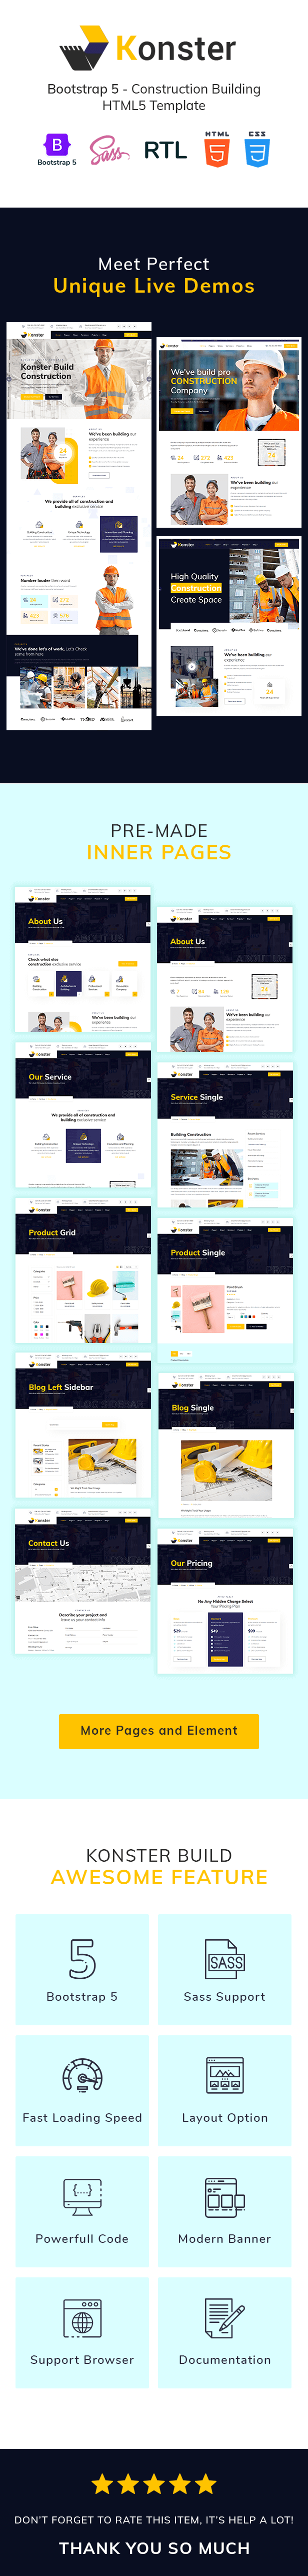 Konster - Construction Building Bootstrap5 Template - 2